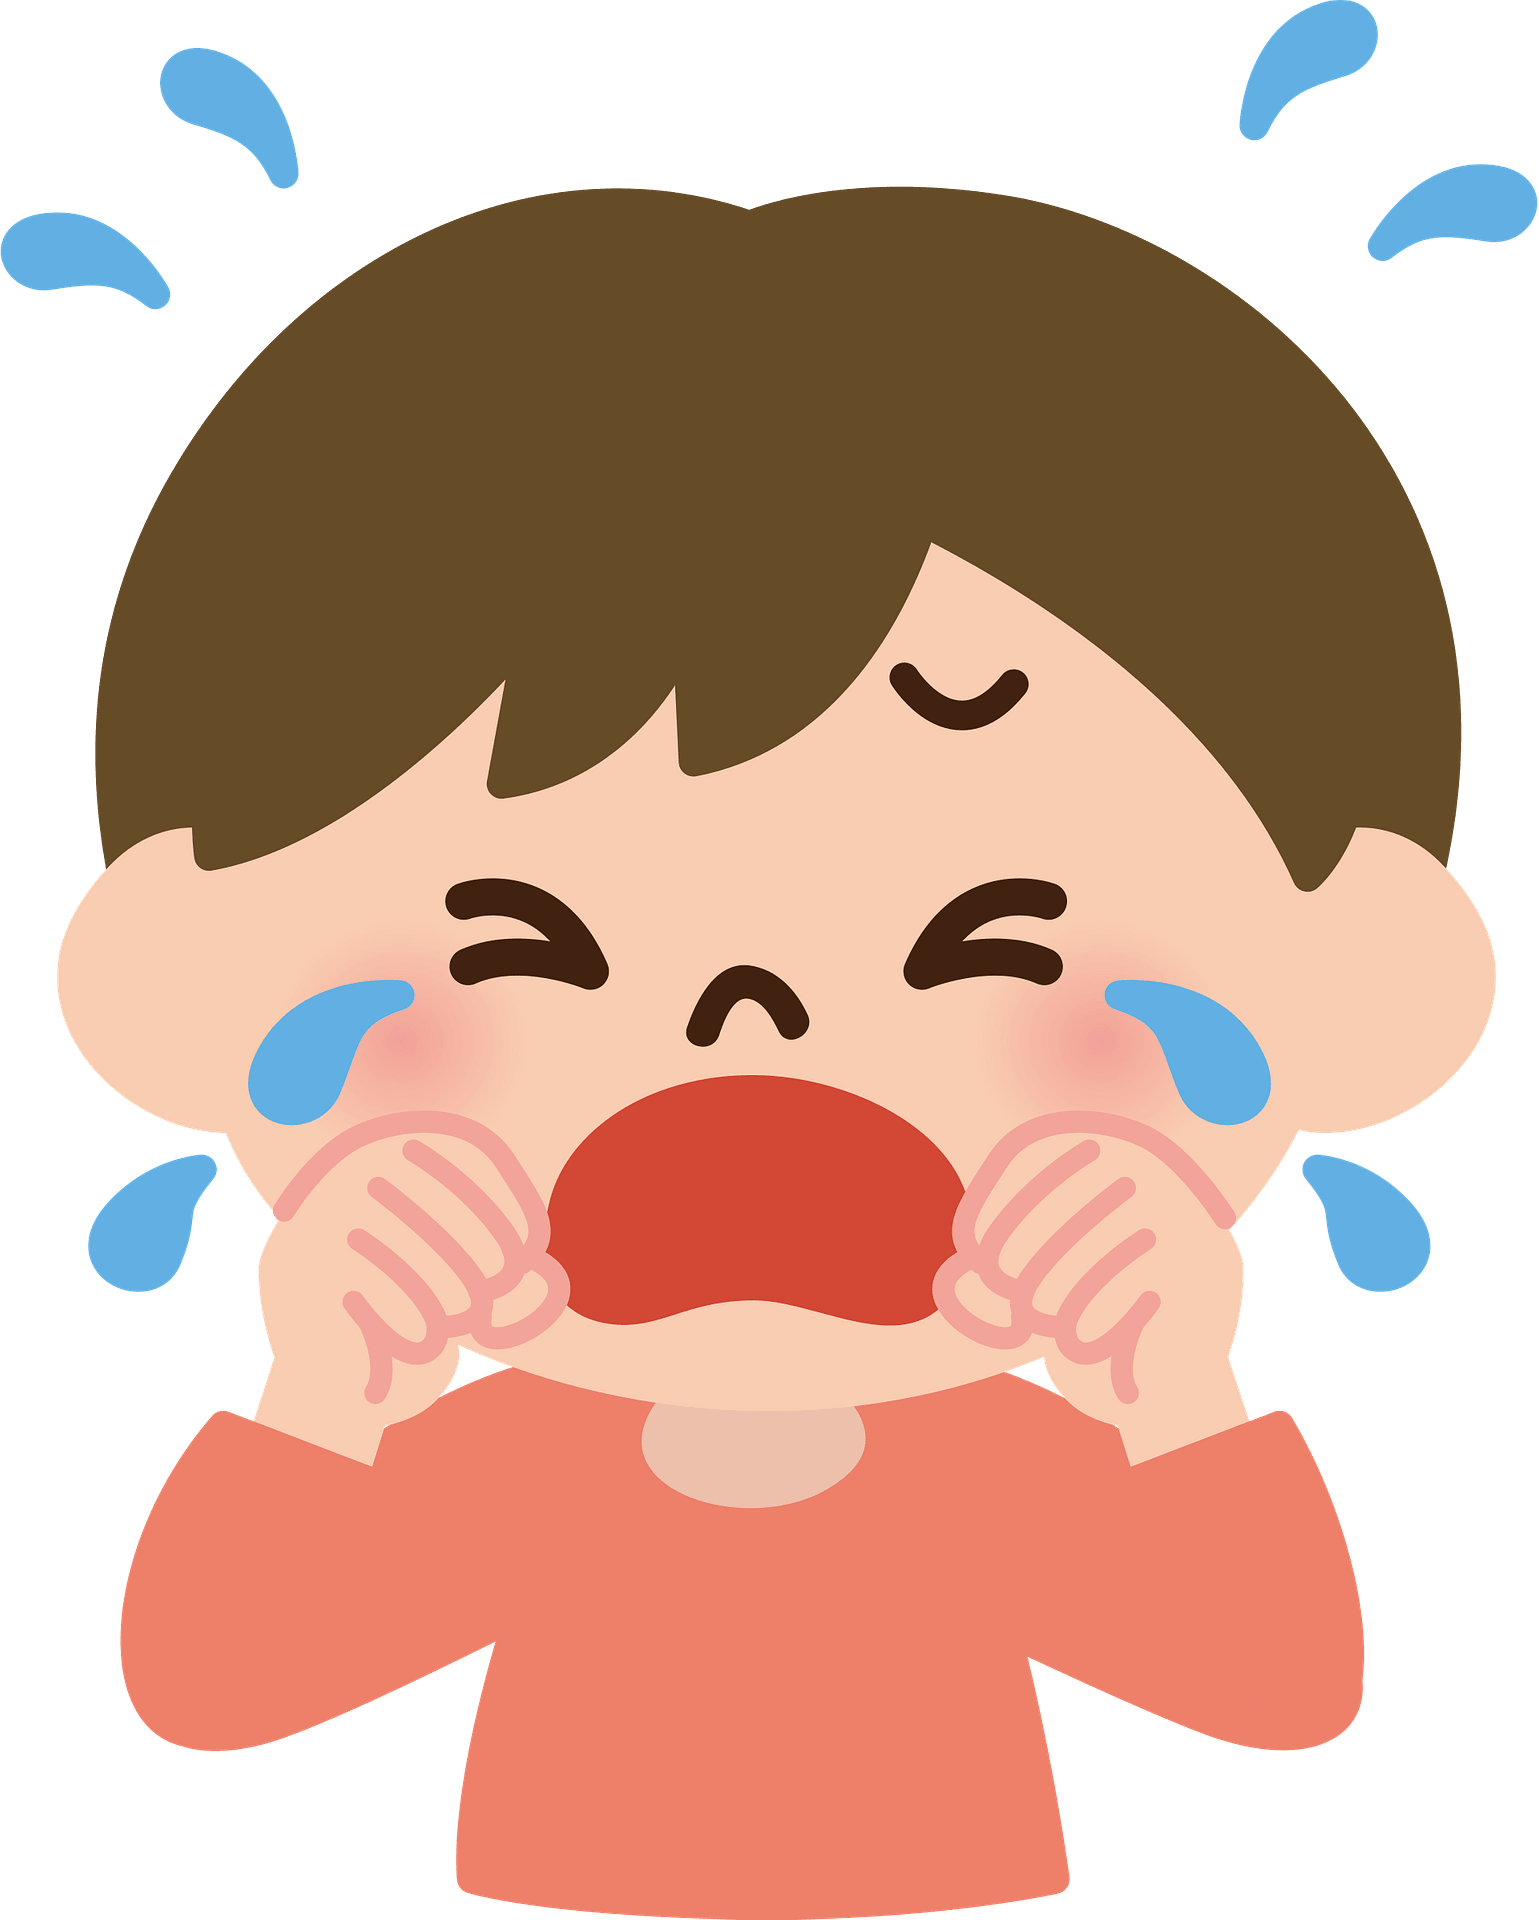 Boy crying in a corner Stock Photo - Alamy